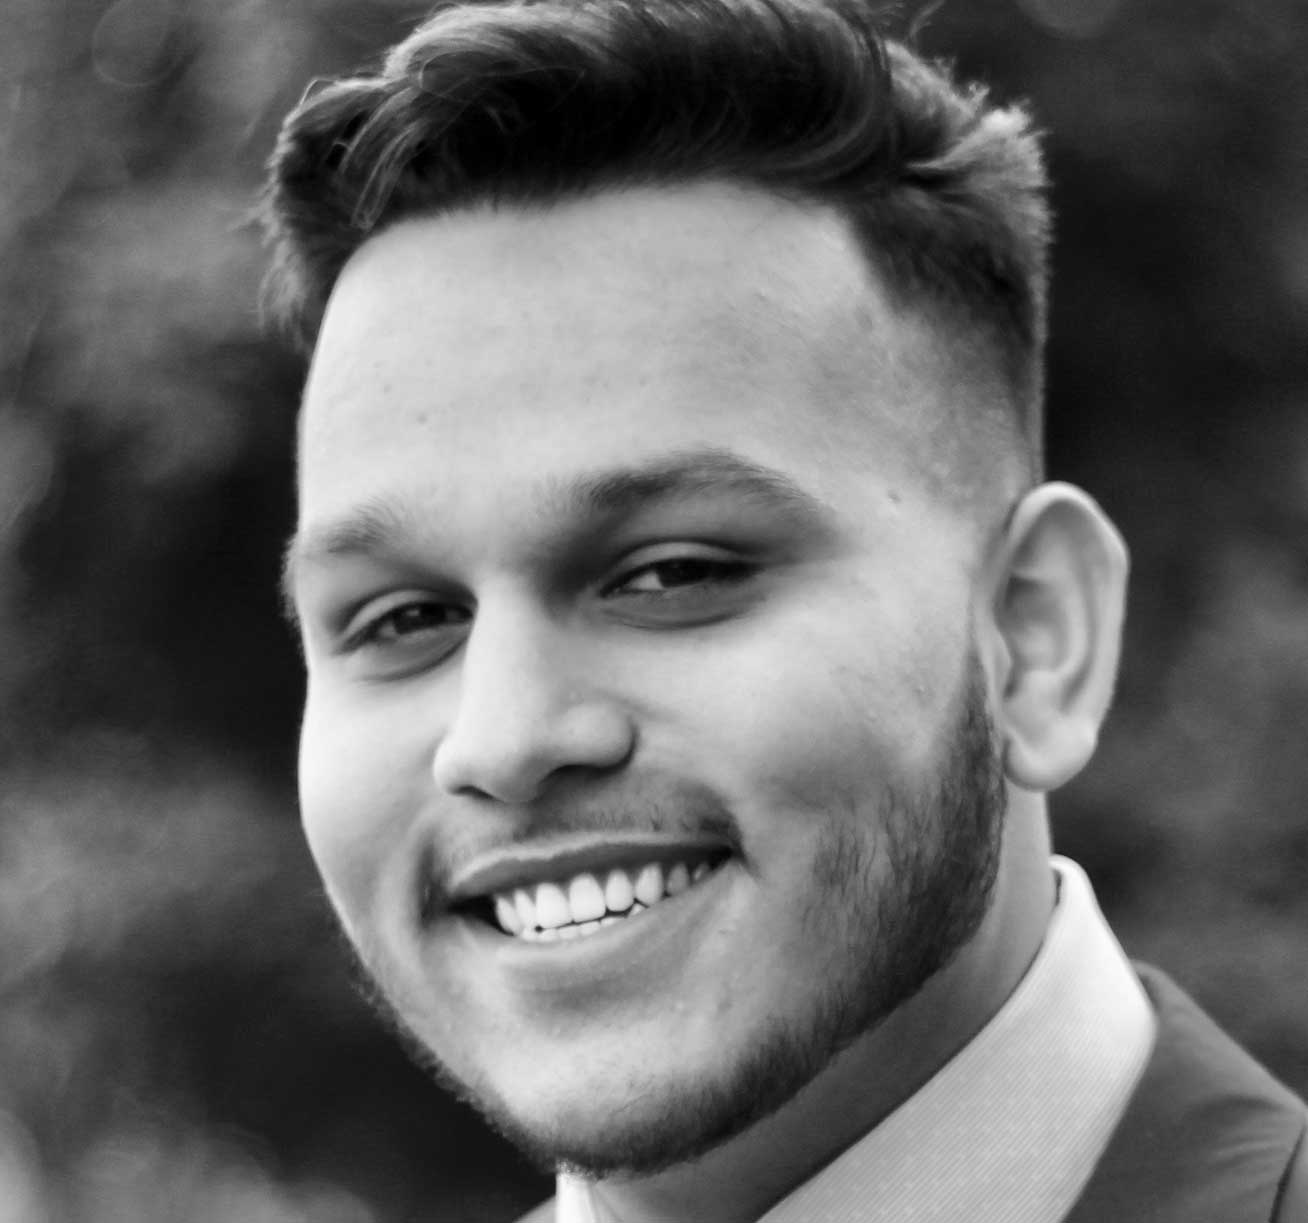 A black and white cropped headshot of Shubhdeep Nagi